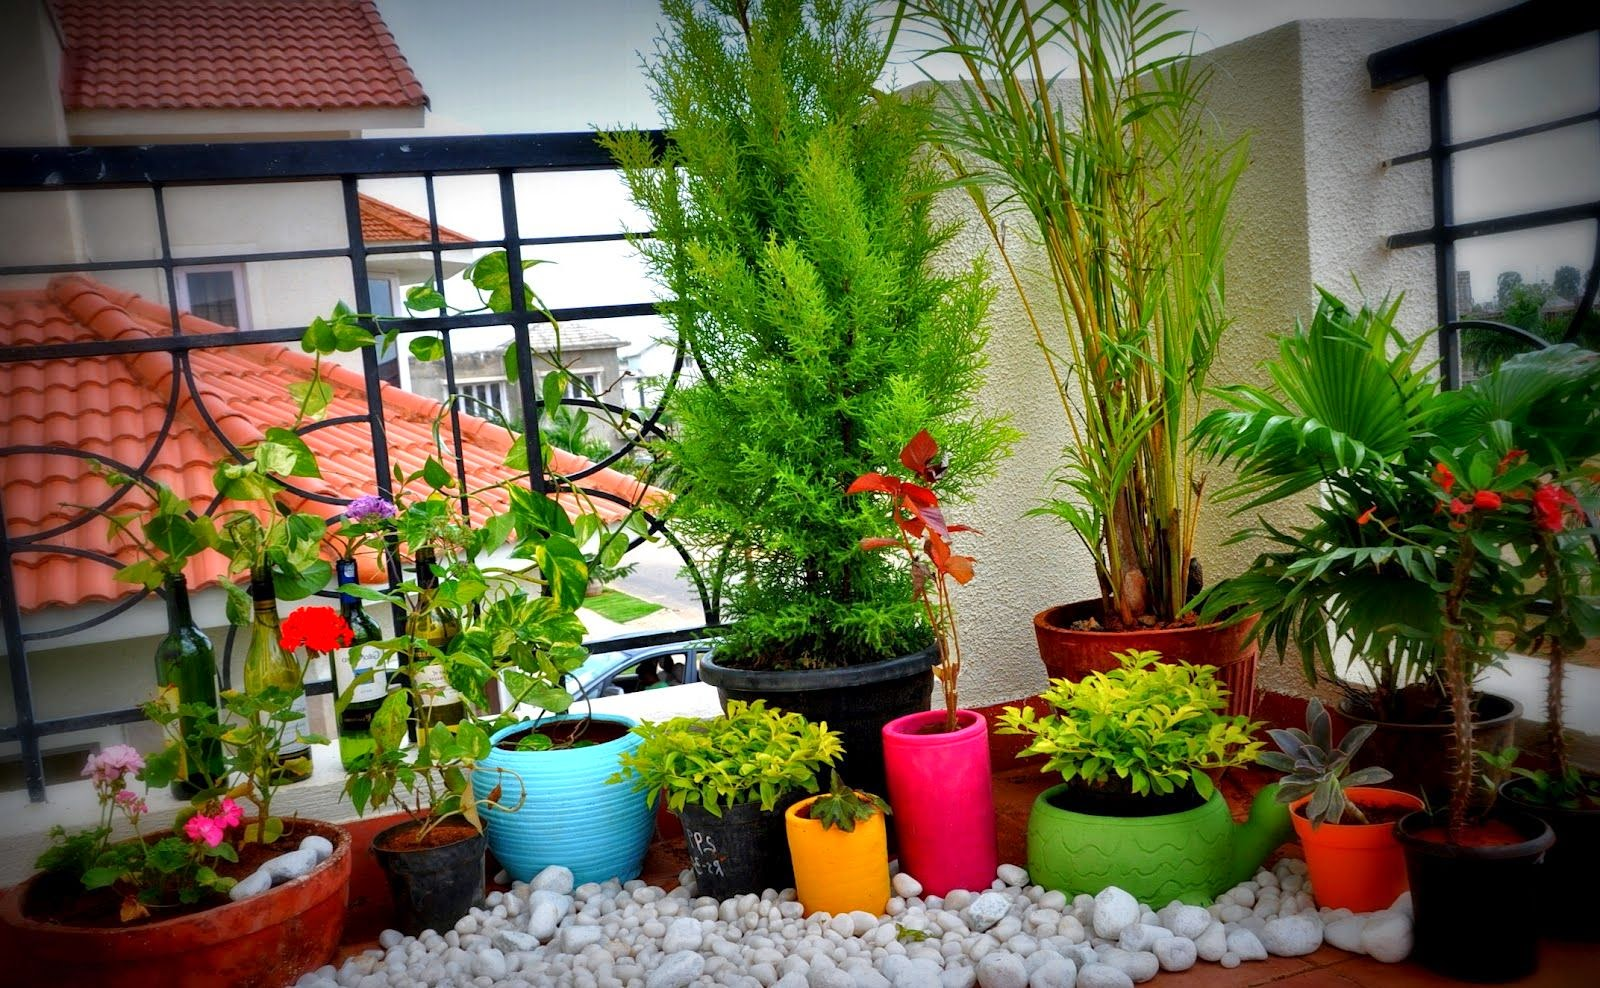 Home garden design for small spaces for Small terrace garden design ideas